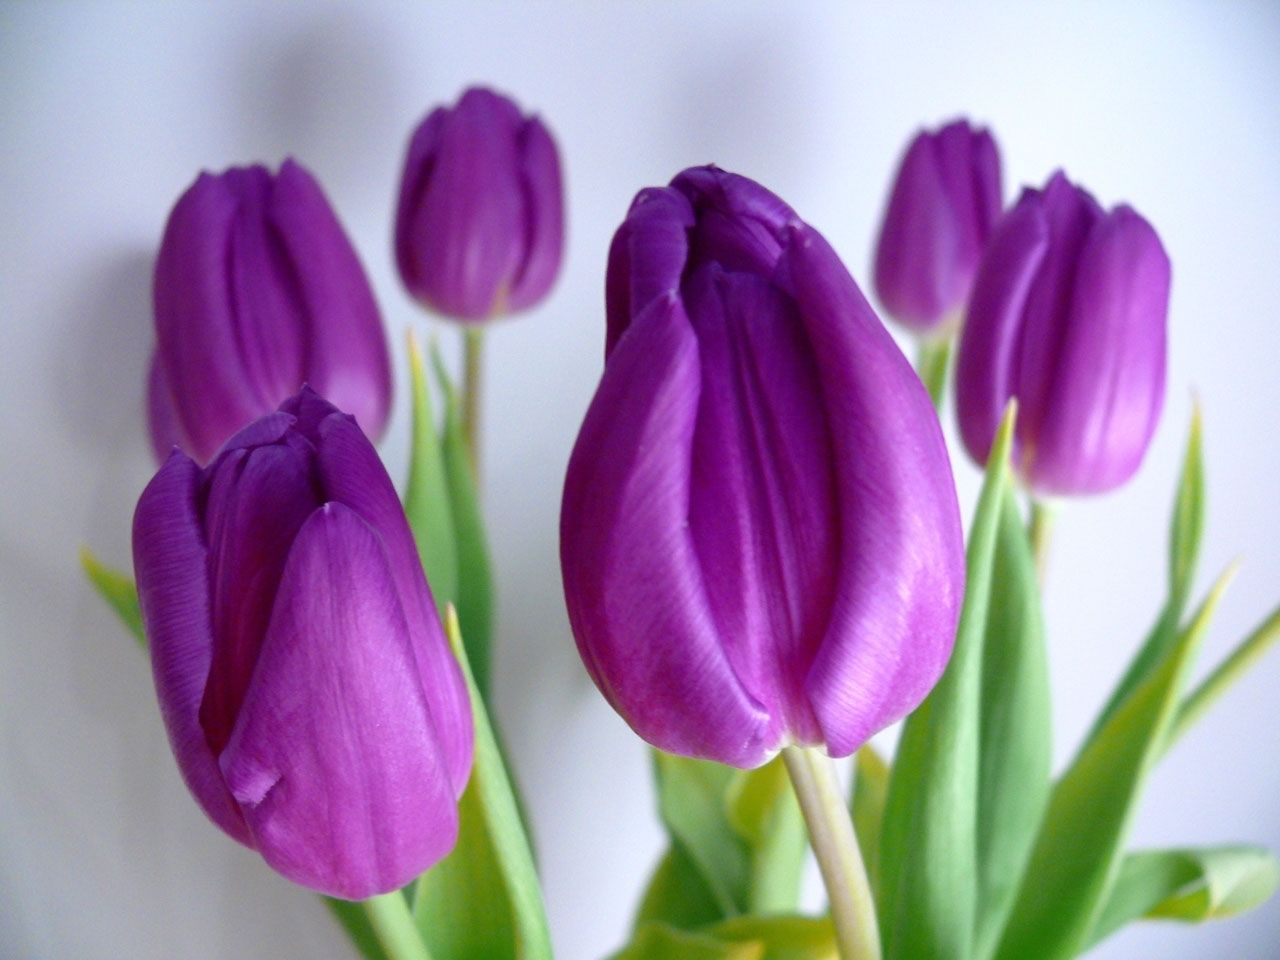 Free pictures of tulips flowers png transparent download Tulip pics free - ClipartFest png transparent download